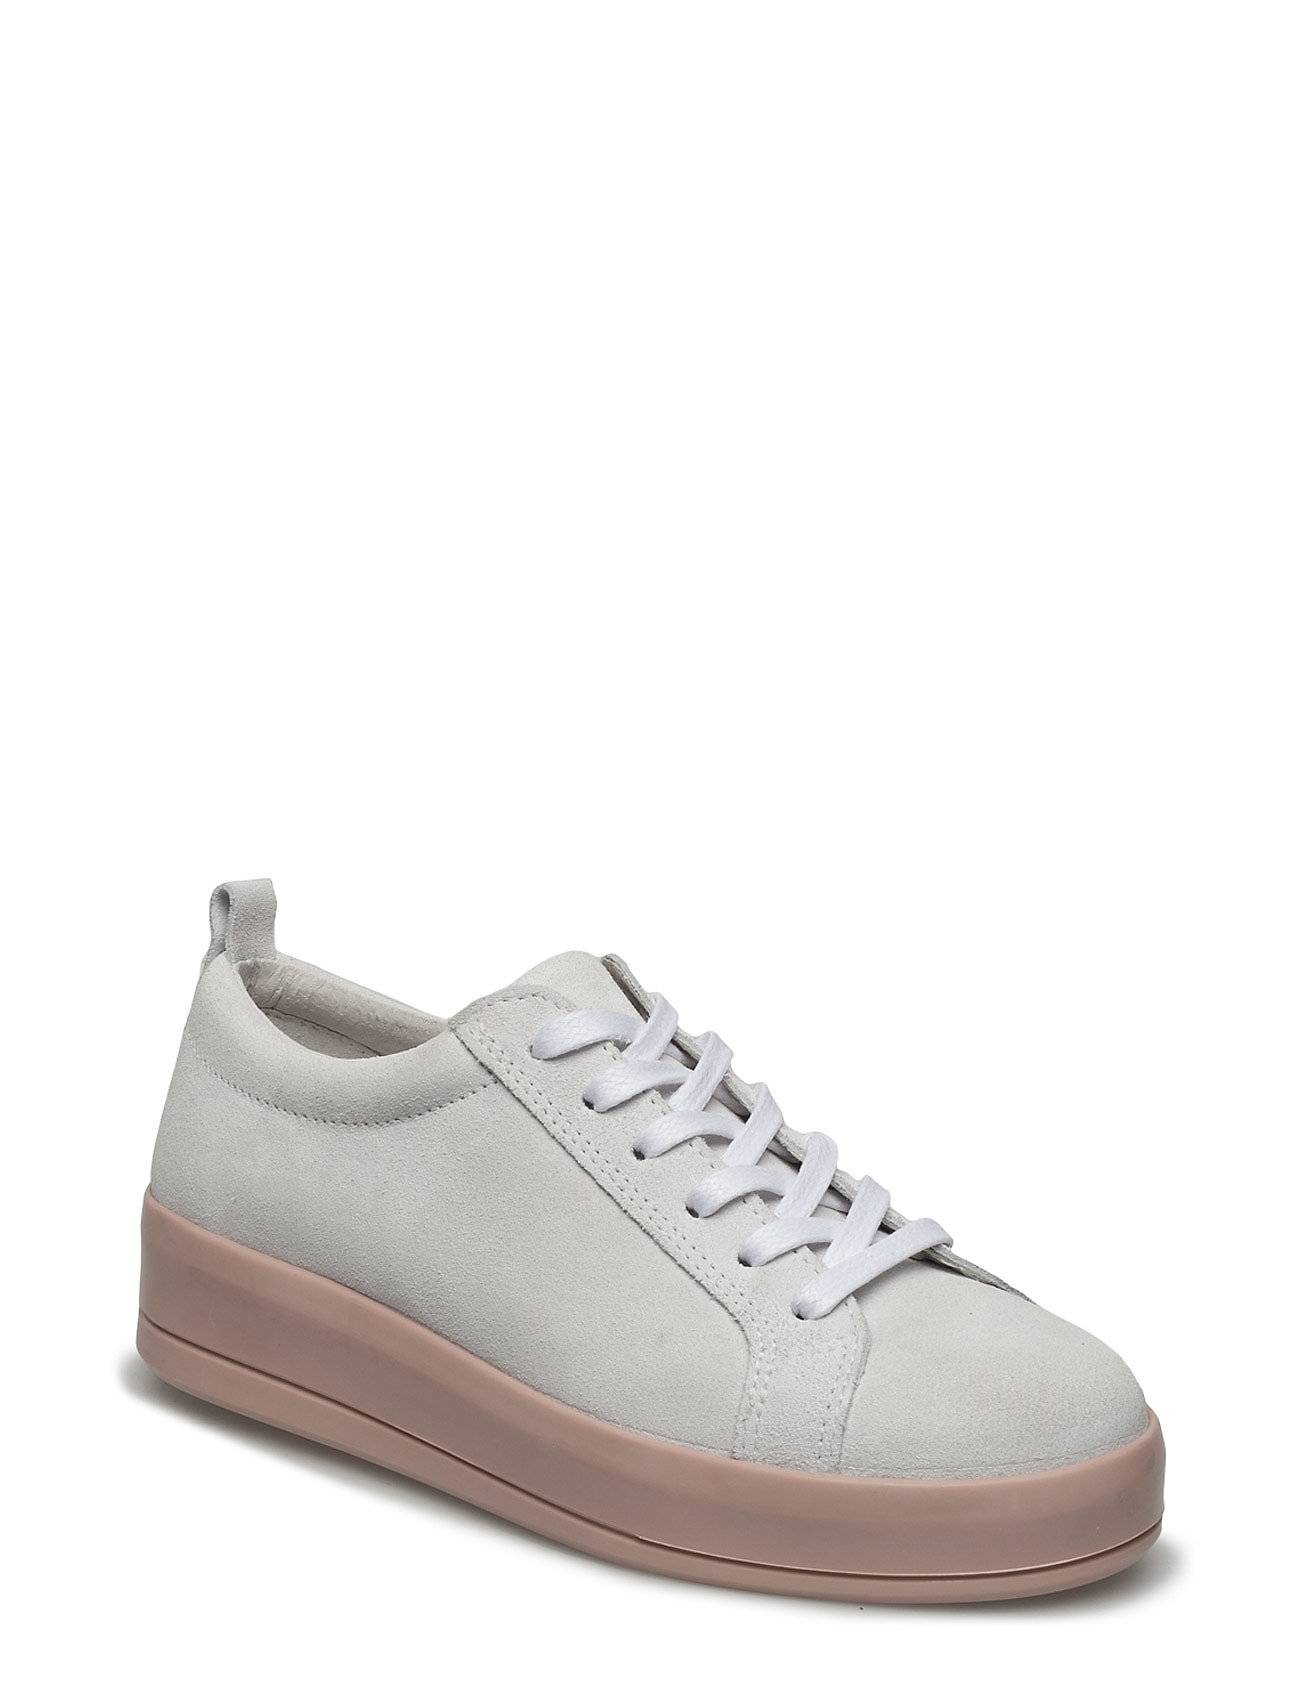 Bianco Flatform Suede Laced Up Exp17